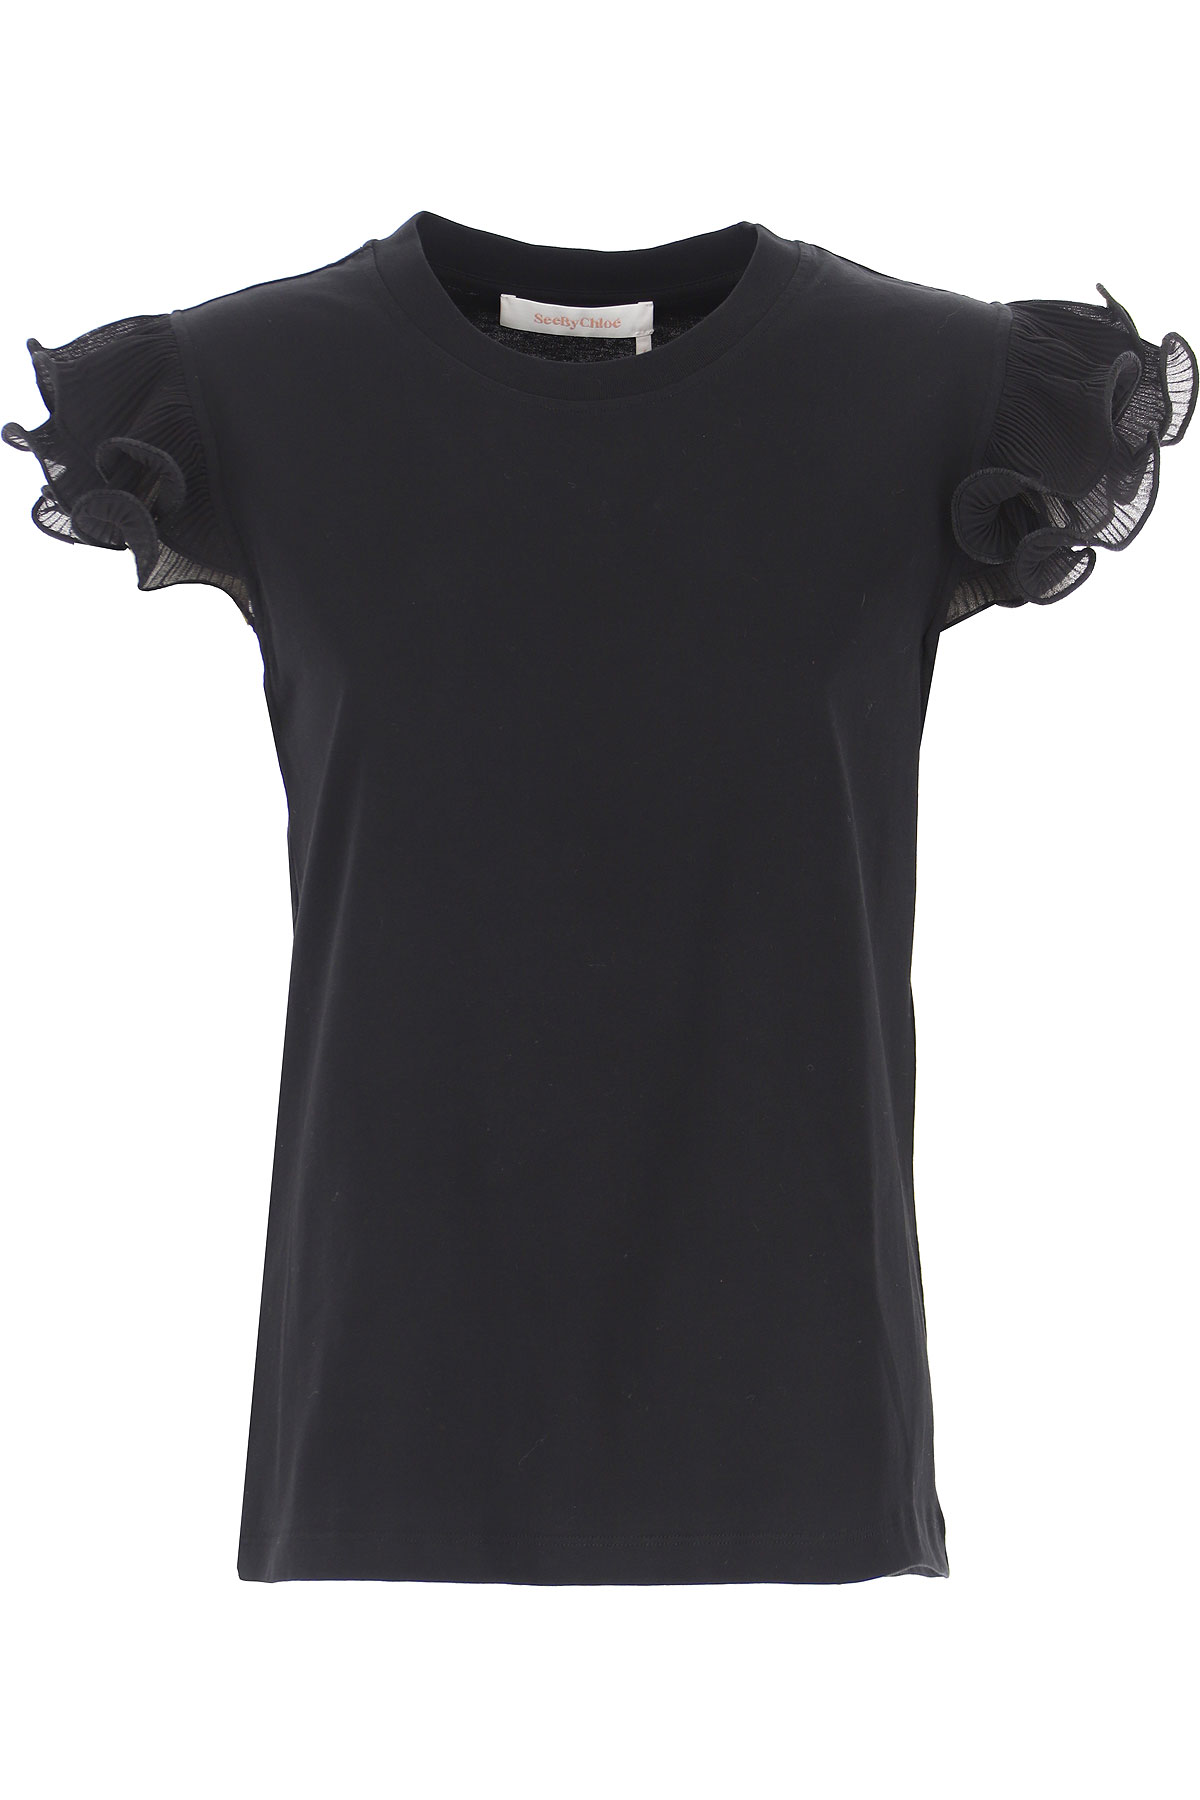 See By Chloe T-Shirt for Women, Black, Cotton, 2019, 4 6 8